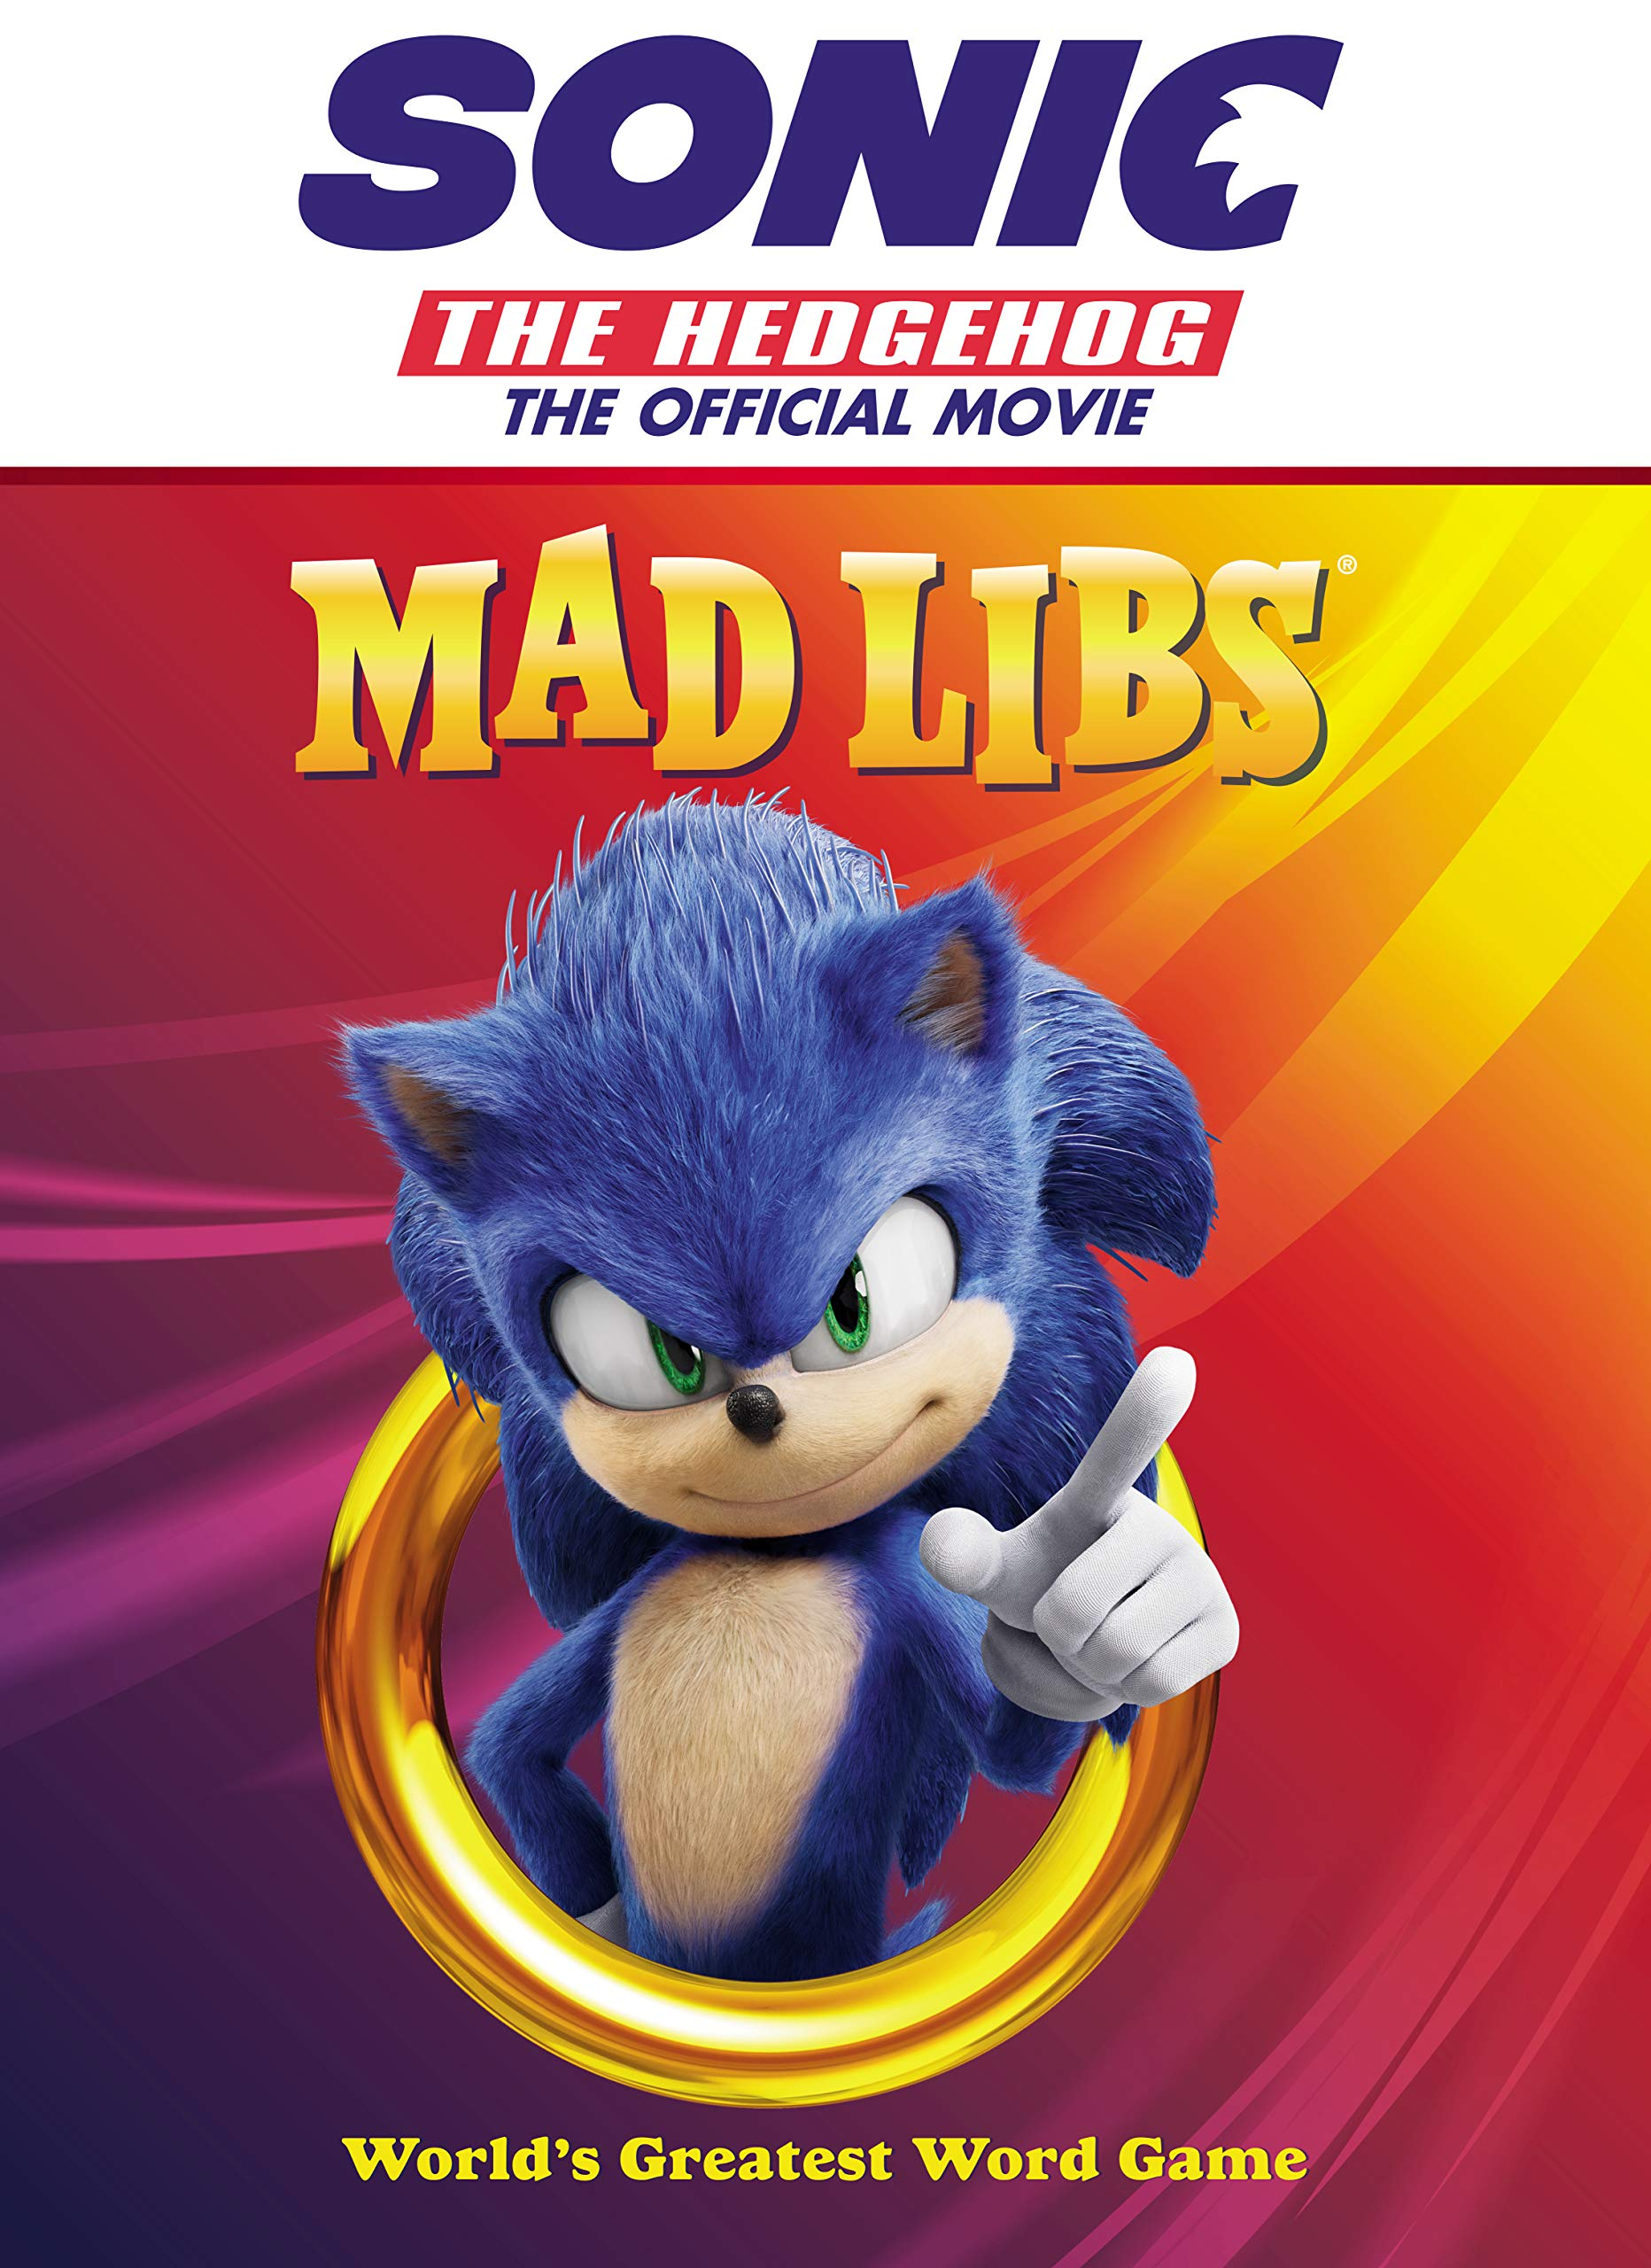 Sonic The Hedgehog The Official Movie Mad Libs Sonic News Network Fandom